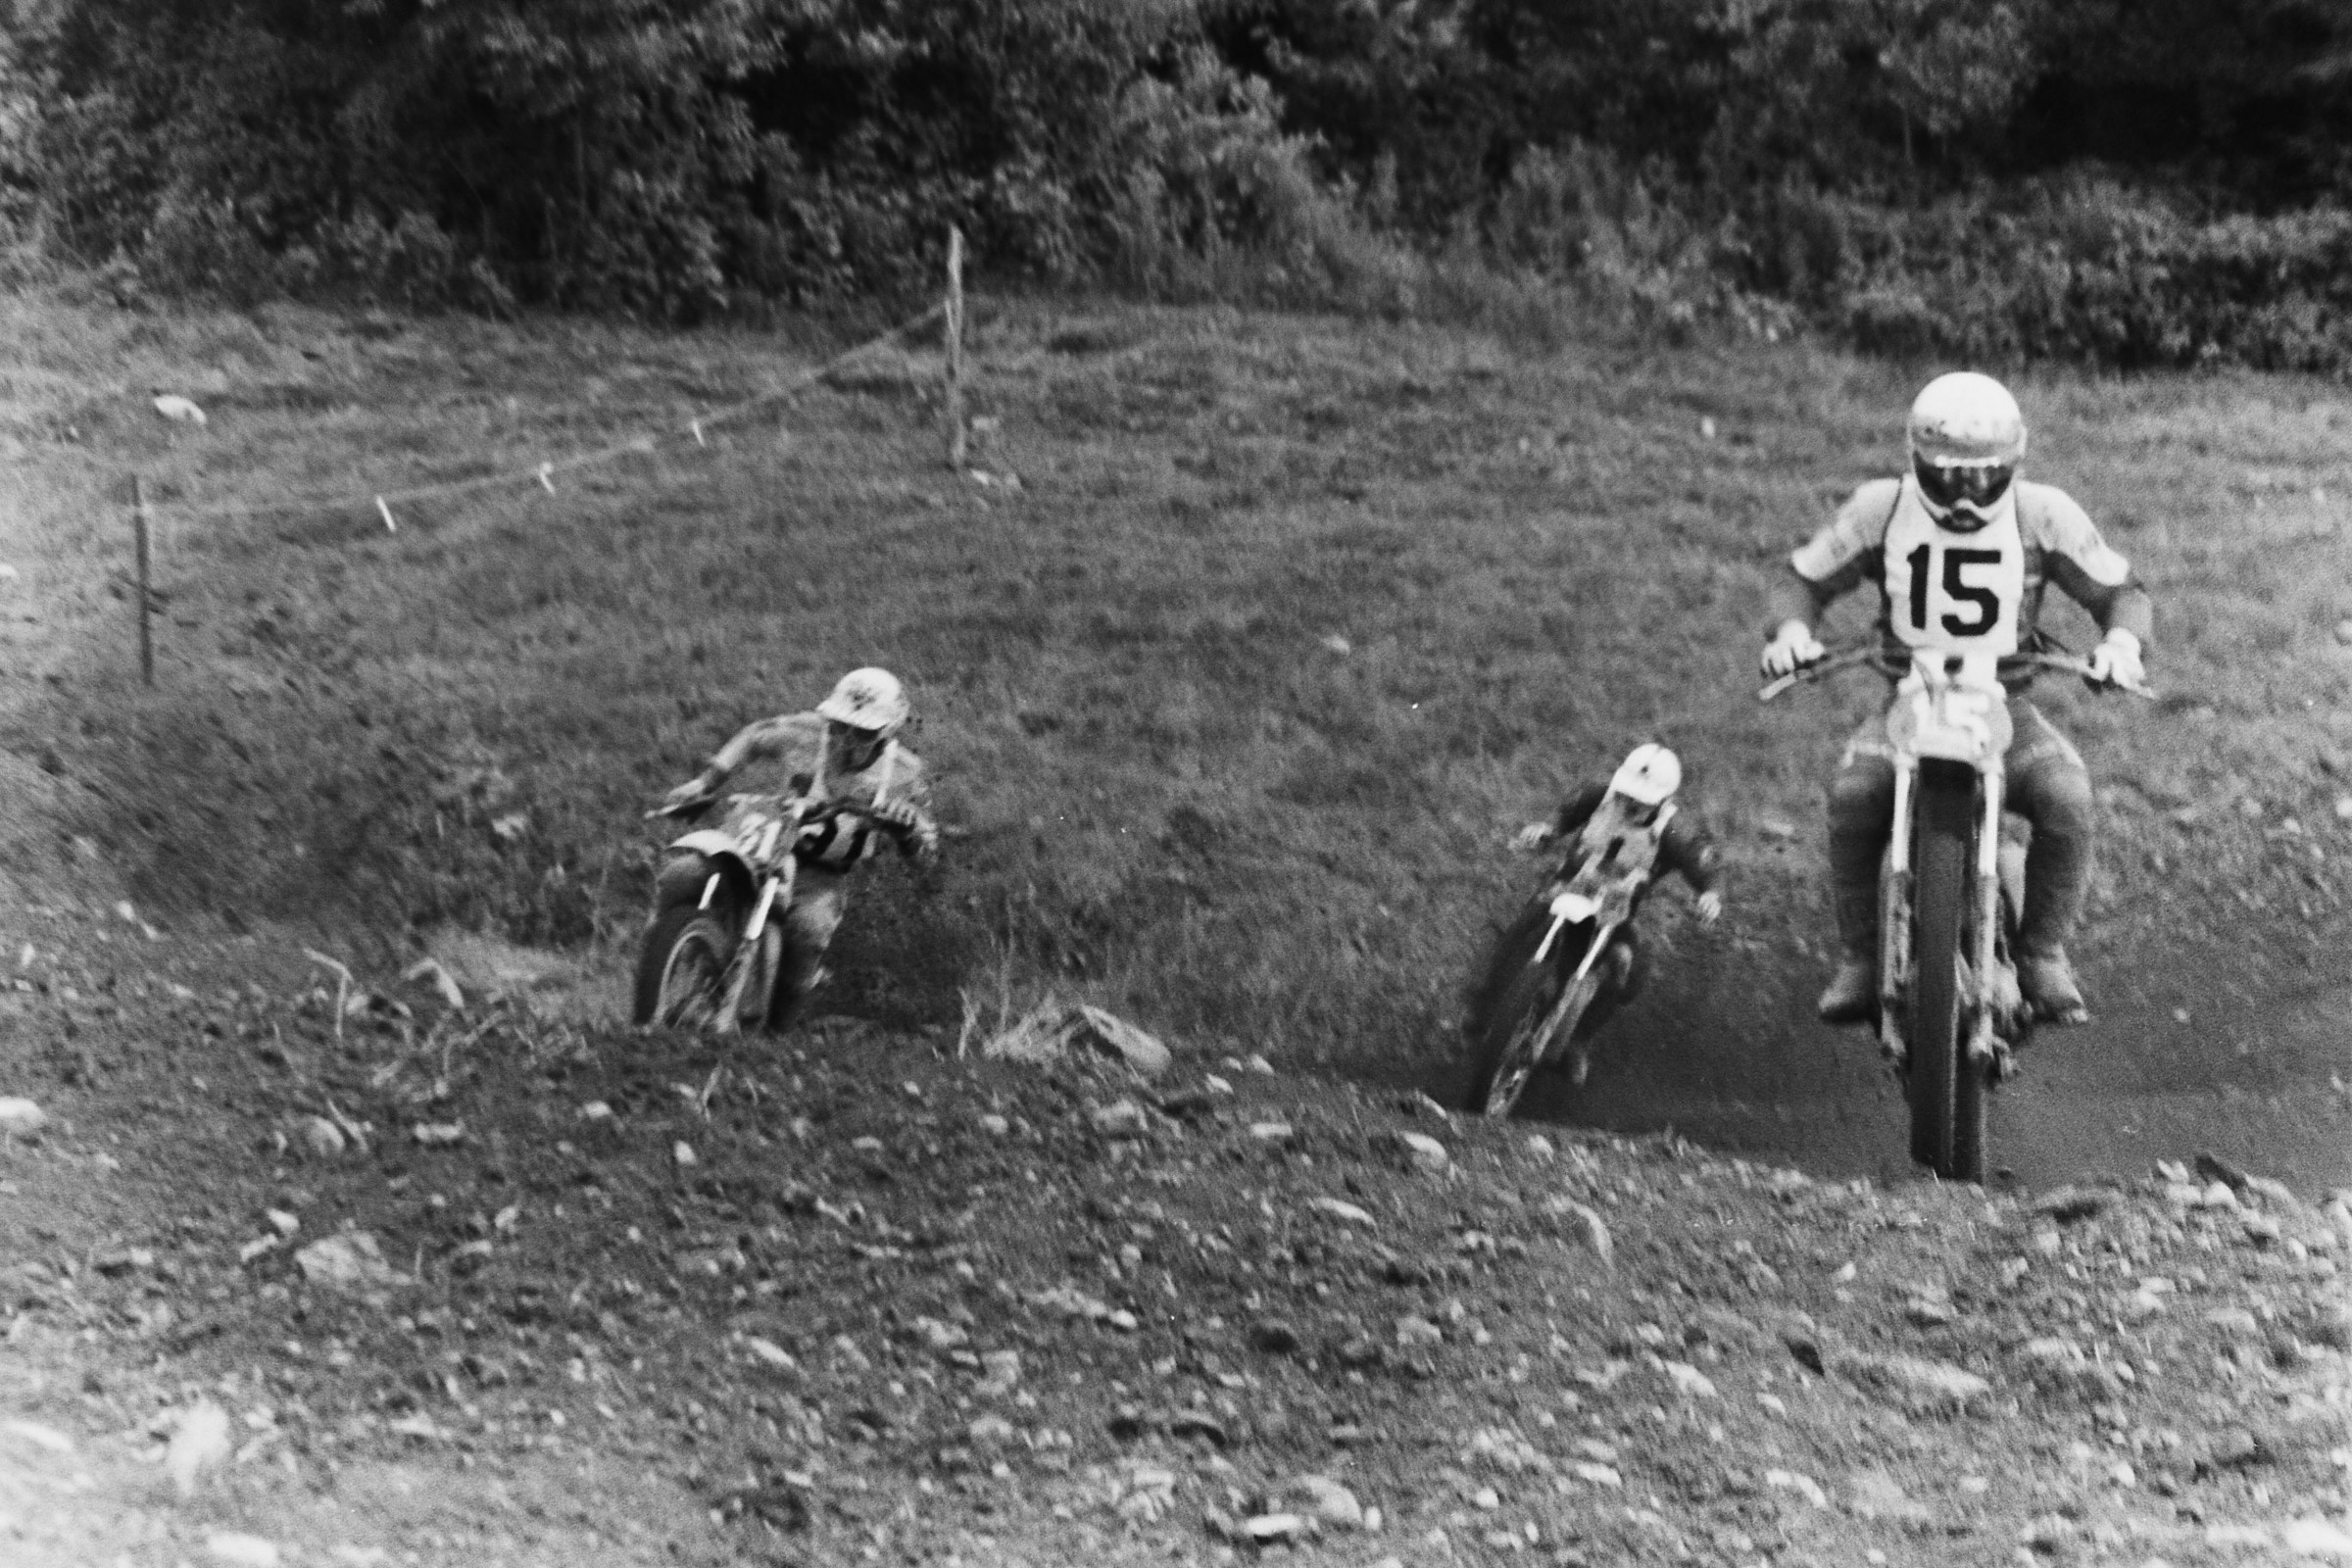 English Maico rider Neil Hudson (15) leads Pennsylvania Yamaha rider John Savitski (31) and 250cc World Champion Gennady Moiseev at the bottom of Screw-U.